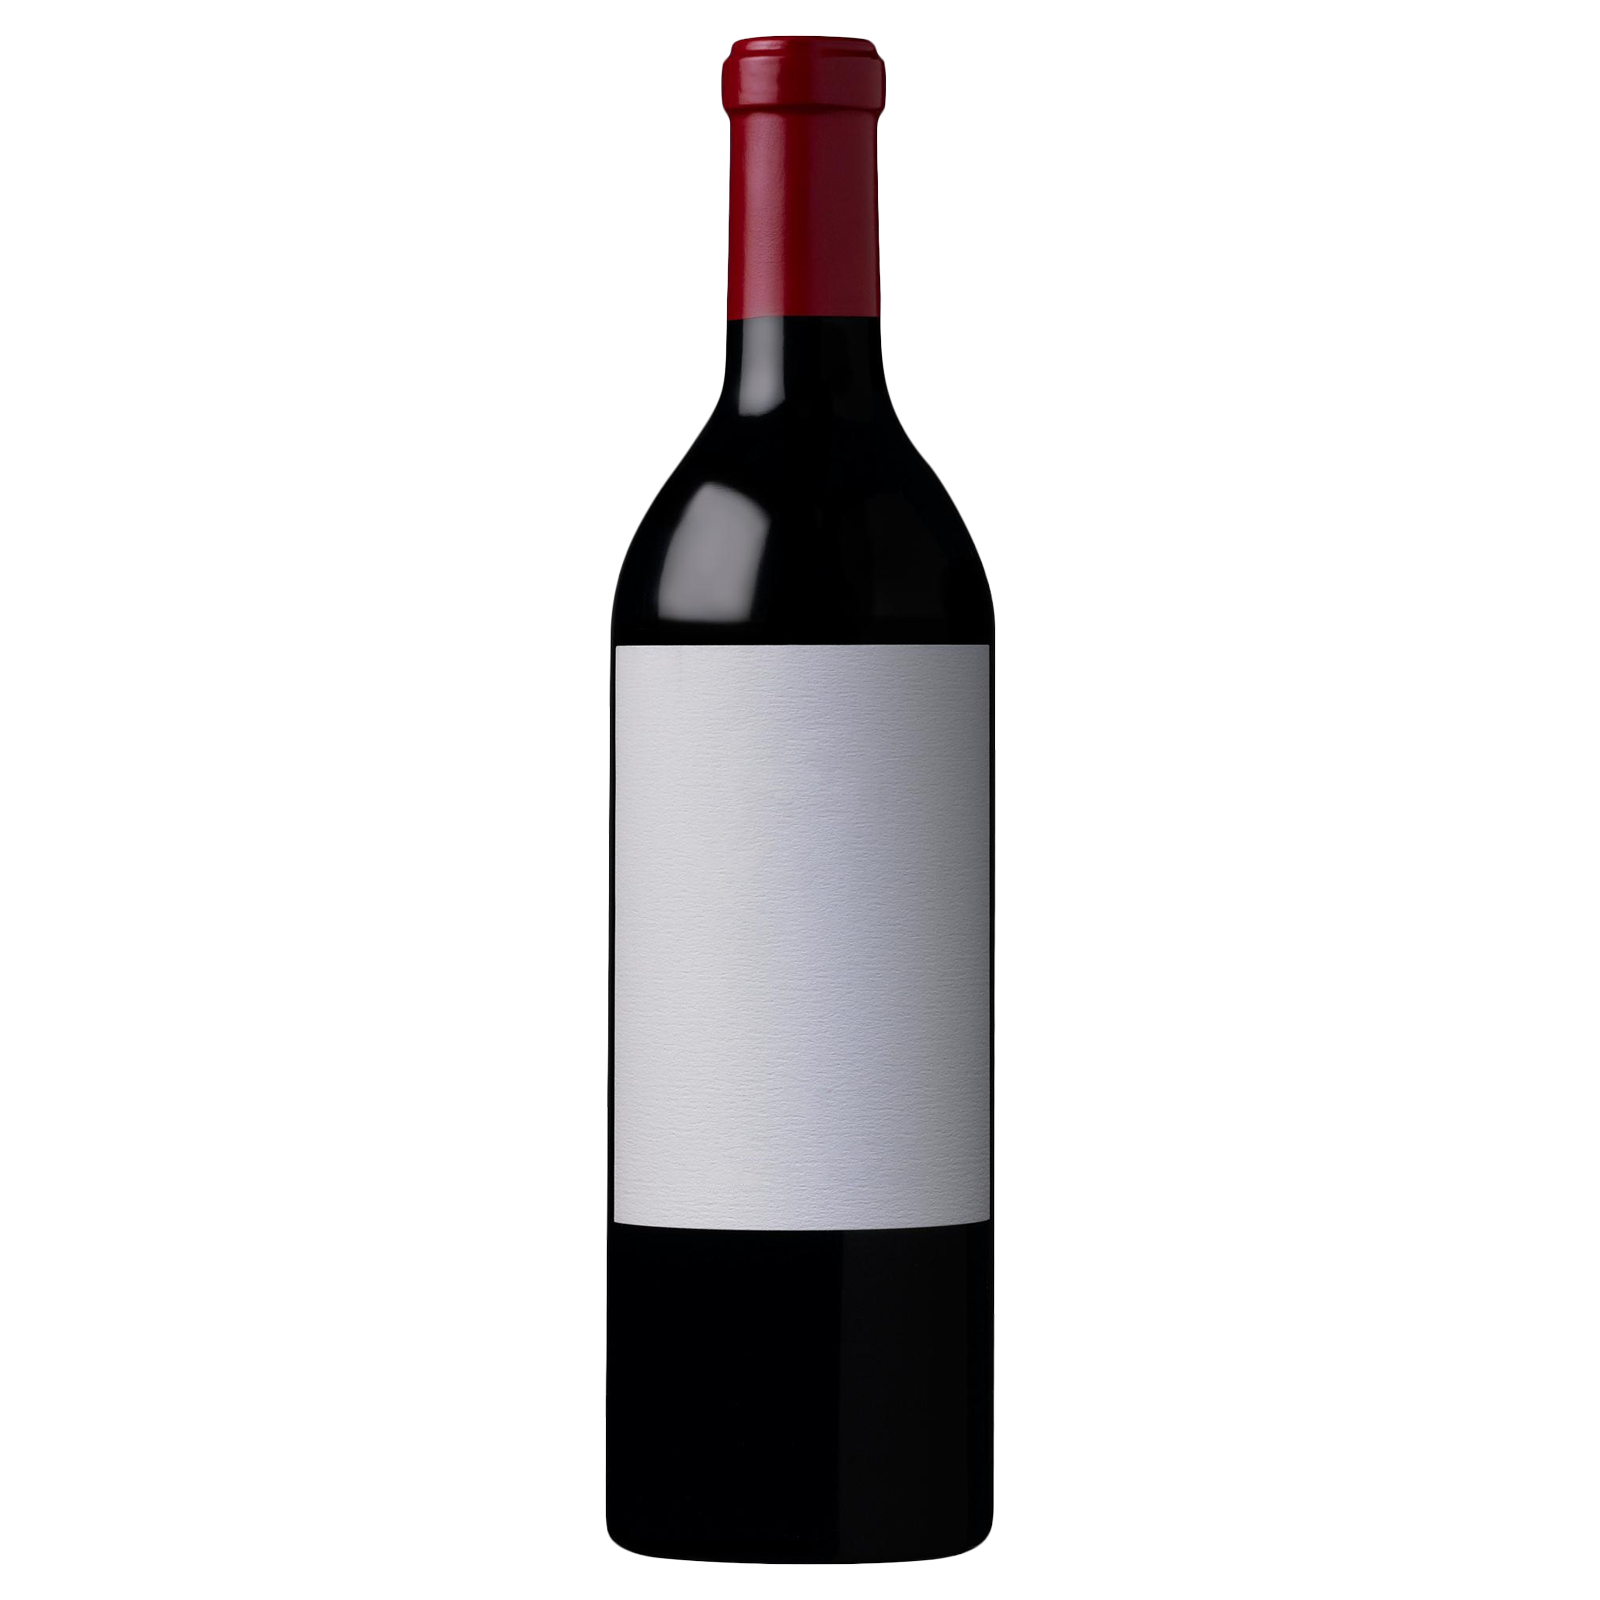 2016 VENGE SCOUT'S HONOR PROPRIETARY RED